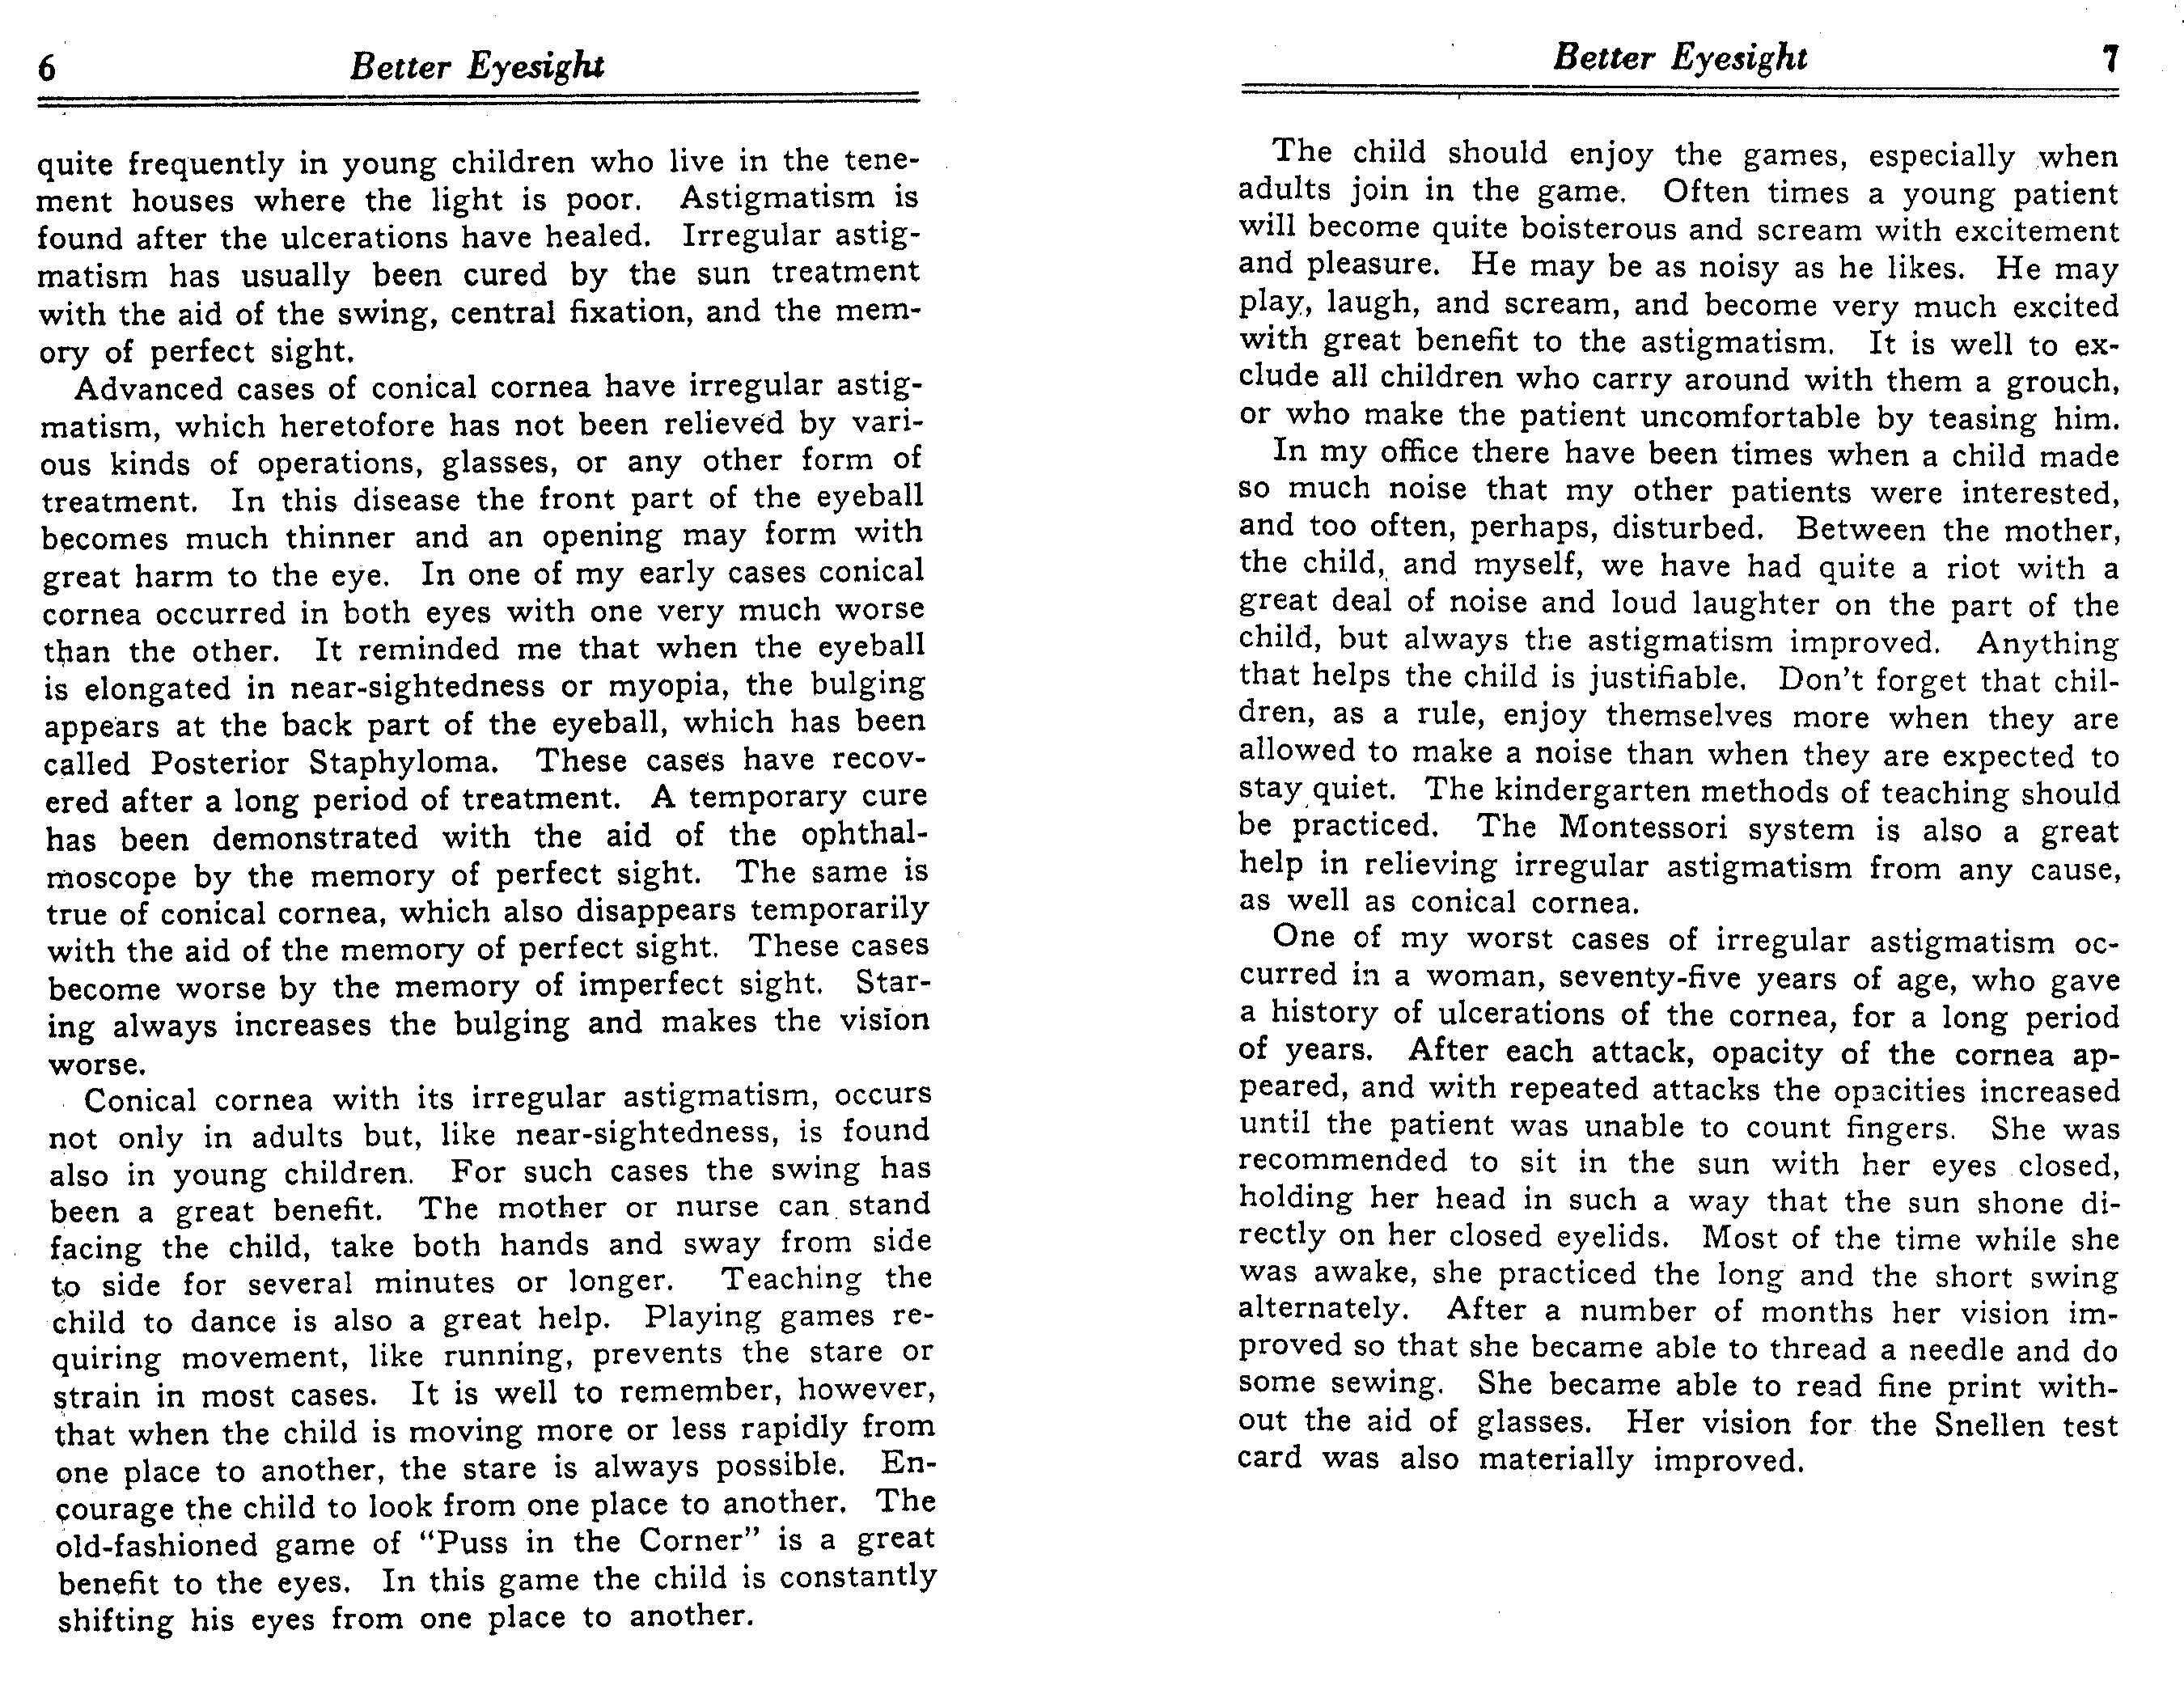 Pinhole eyeglasses many examples directions for central fixation shifting and all natural vision functions practices are in dr bates book and magazines geenschuldenfo Choice Image